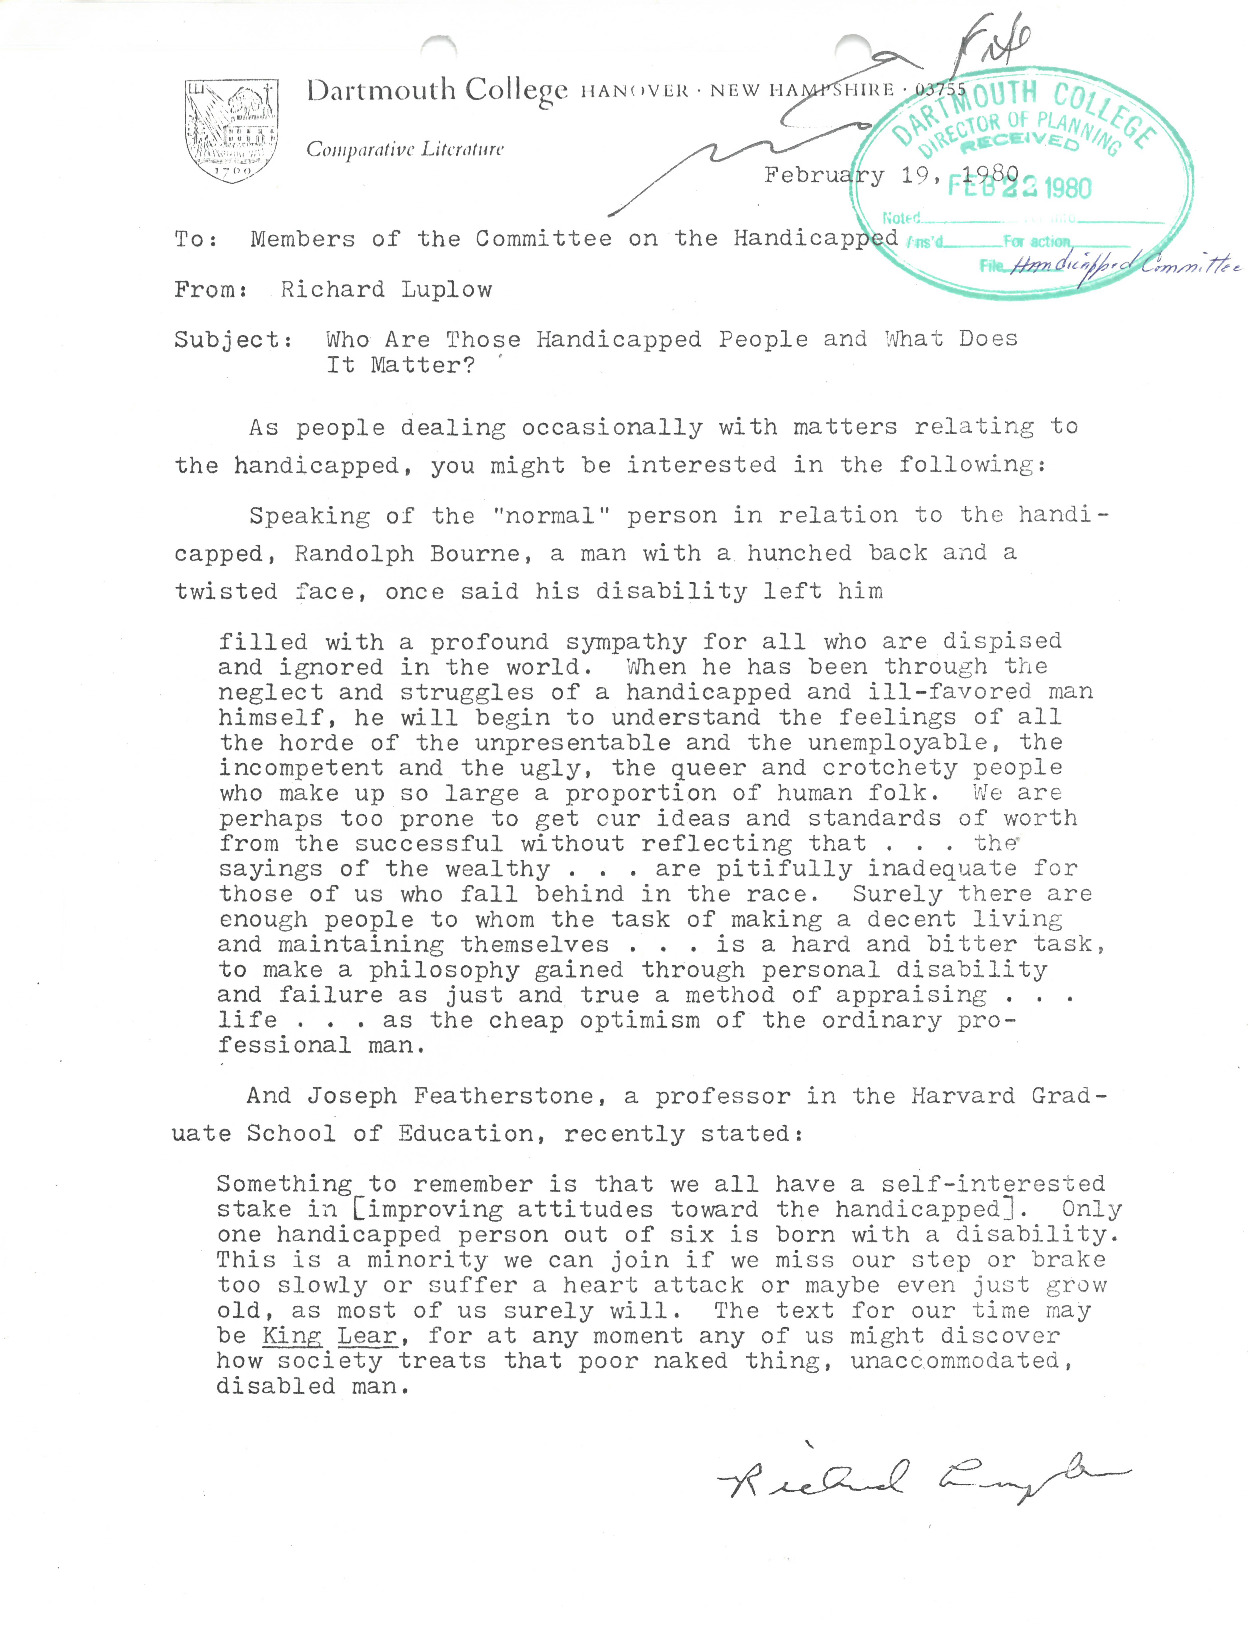 This memo from Richard Luplow quotes two individuals on improving attitudes towards the disabled. As one of the two members on Advisory Council on the Handicapped who used a wheelchair, it is possible that Luplow wanted to make his fellow committee members aware of different disabled experiences than just his own perspective.